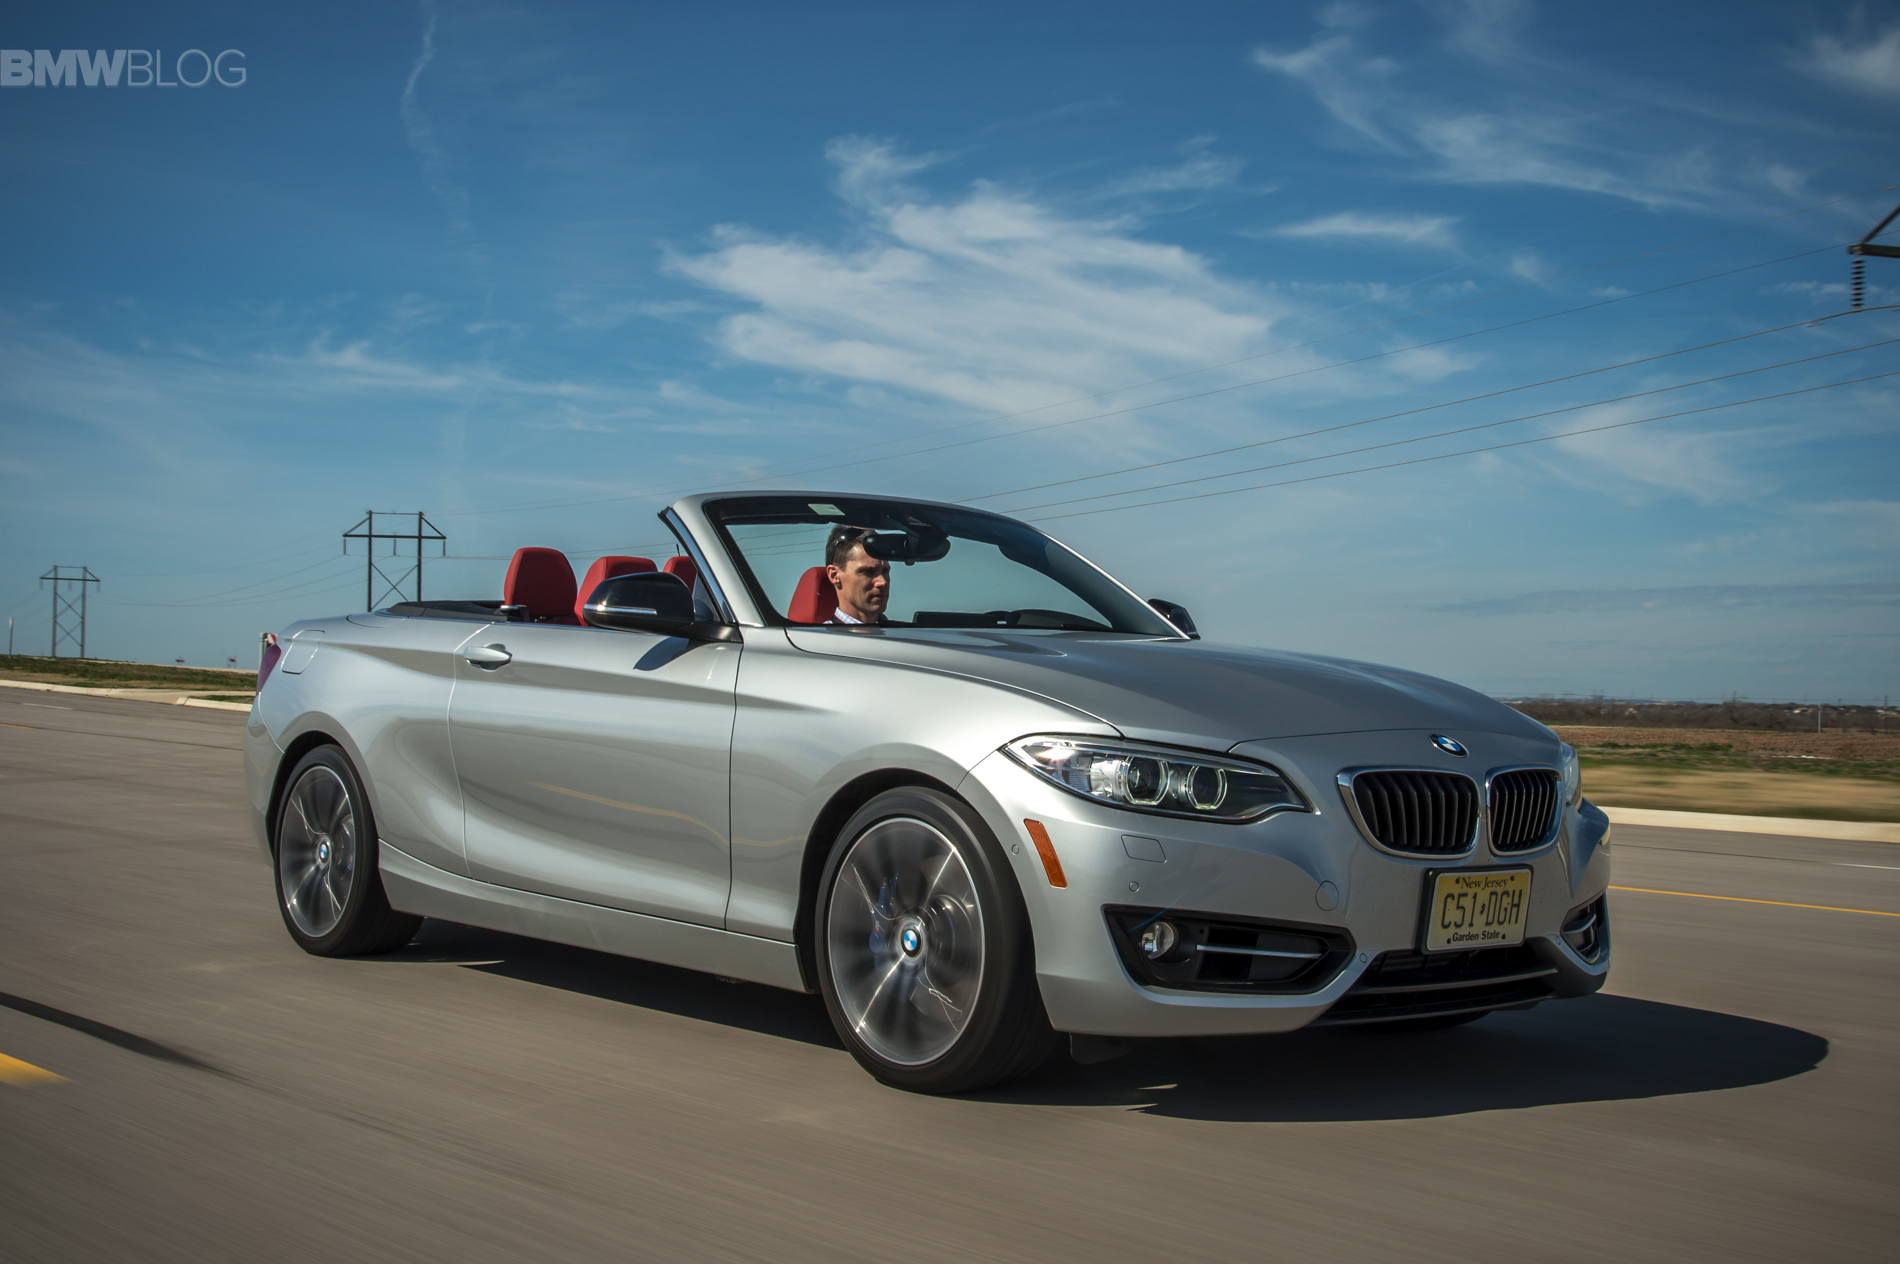 BMW 2 SERIES CONVERTIBLE TEST DRIVE Images 04